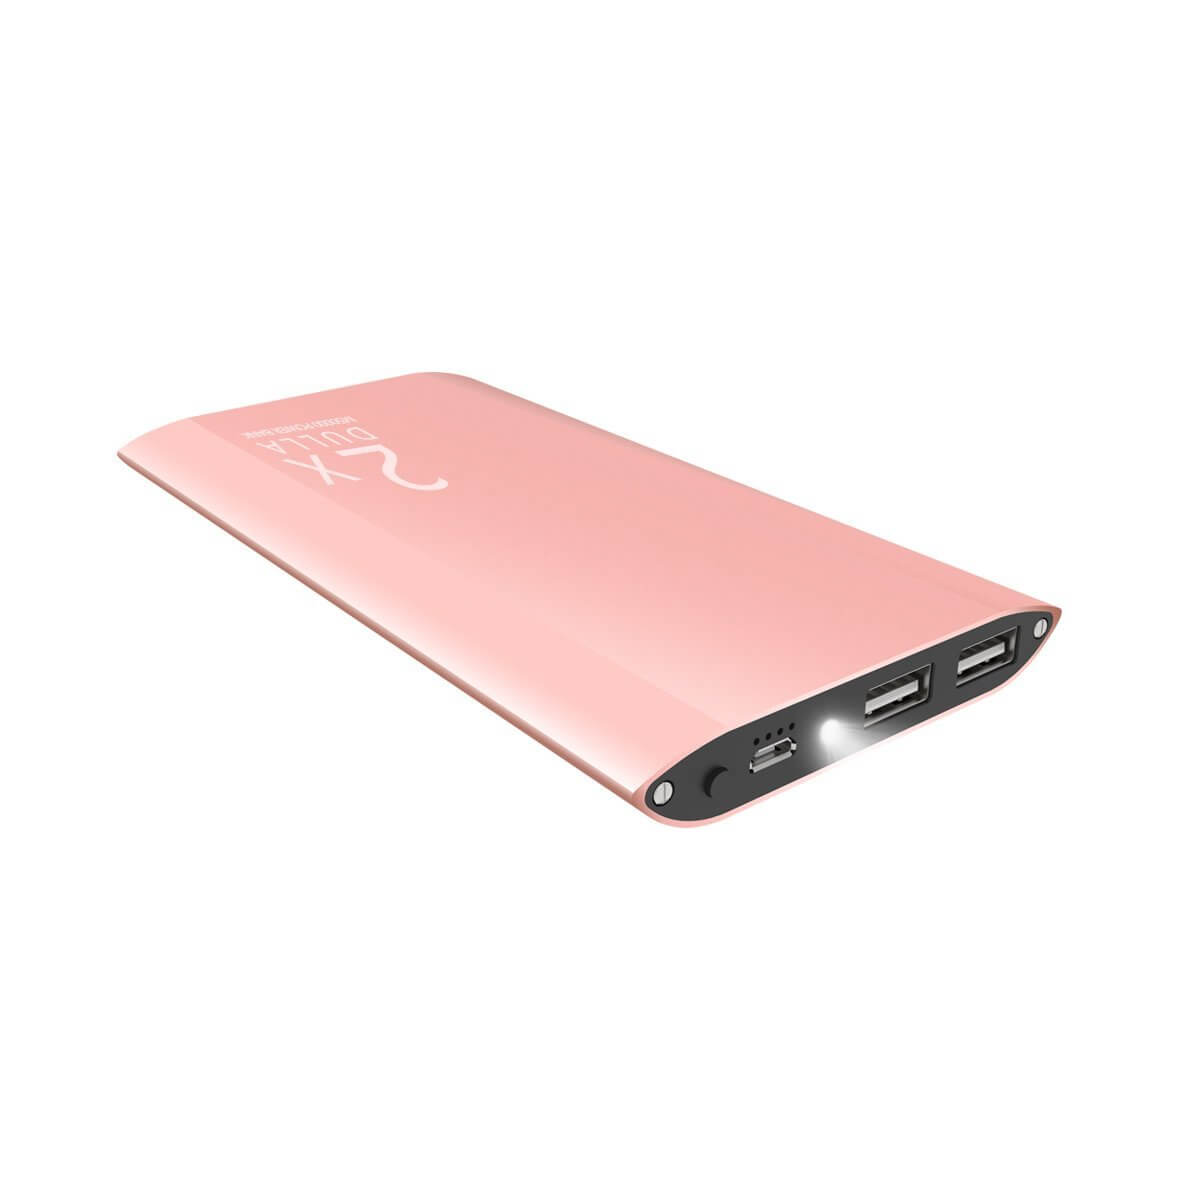 9. DULLA M50000 Portable Power Bank